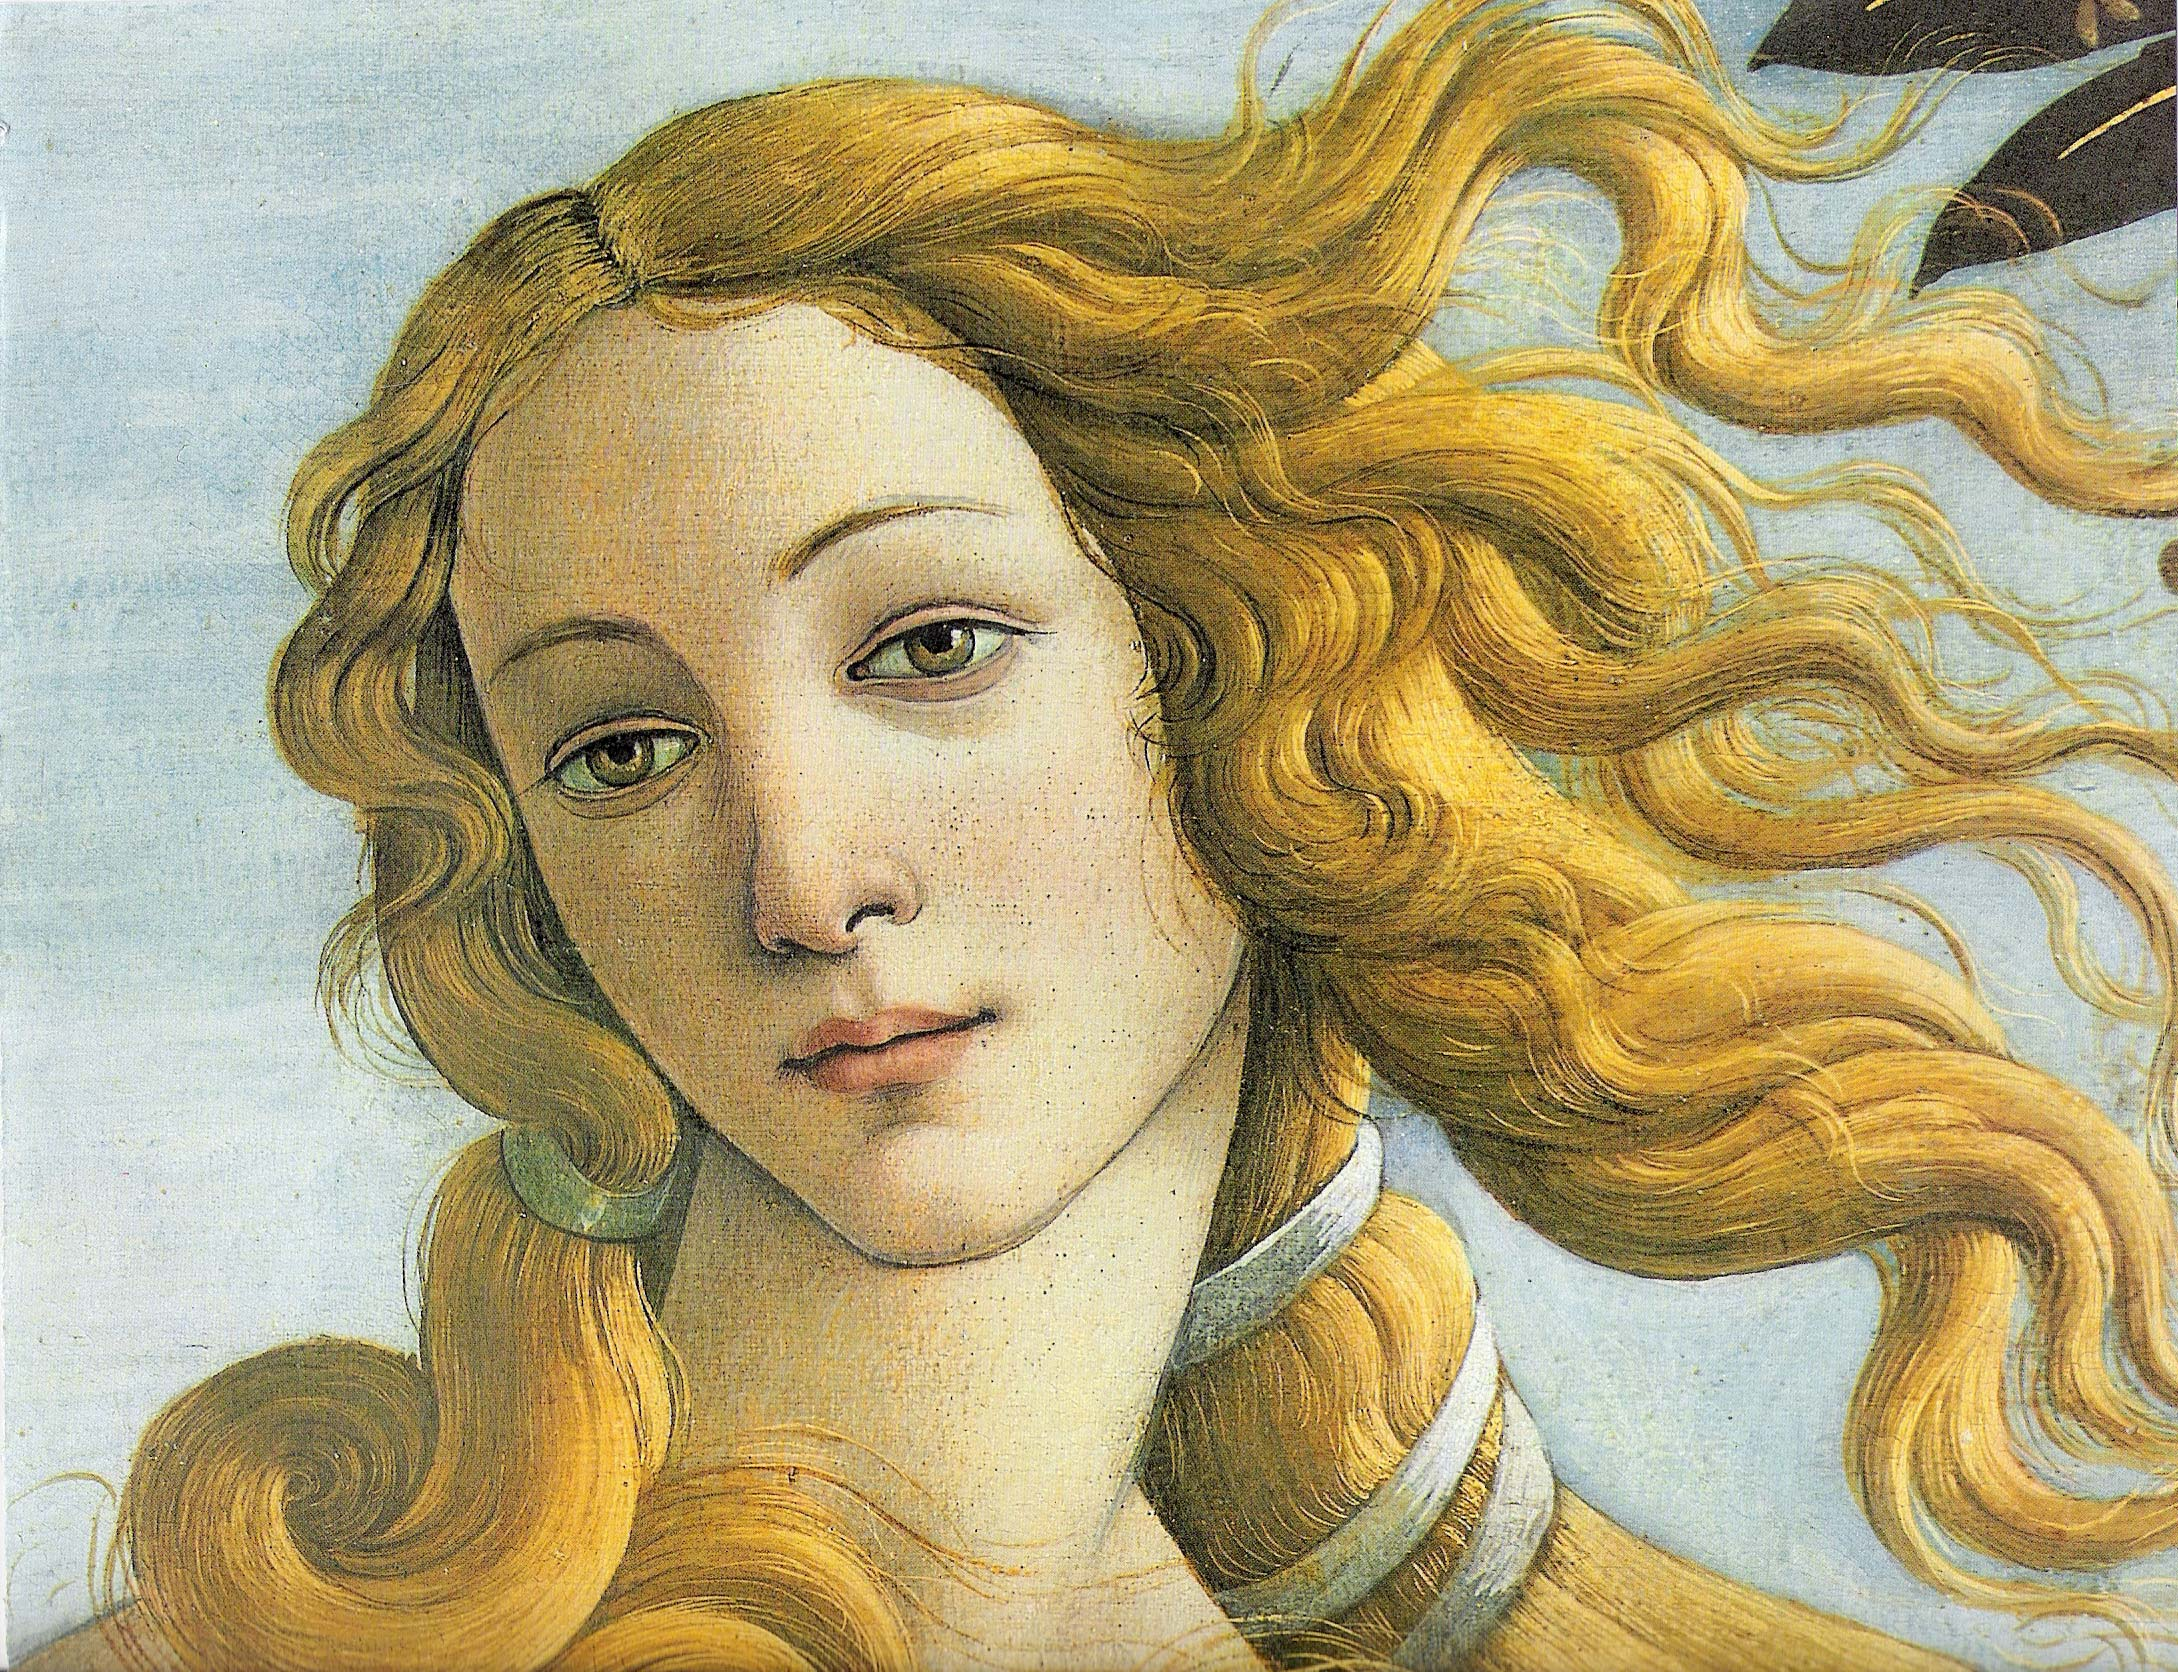 an analysis of the birth of venus a painting by sandro botticello Sandro botticelli birth of venus 317 by andy warhol is an intention to give a pop   italian renaissance artist, sandro botticelli created a painting of the figure  after he  the scene is said to be an interpretation of a poem by angelo  poliziano.